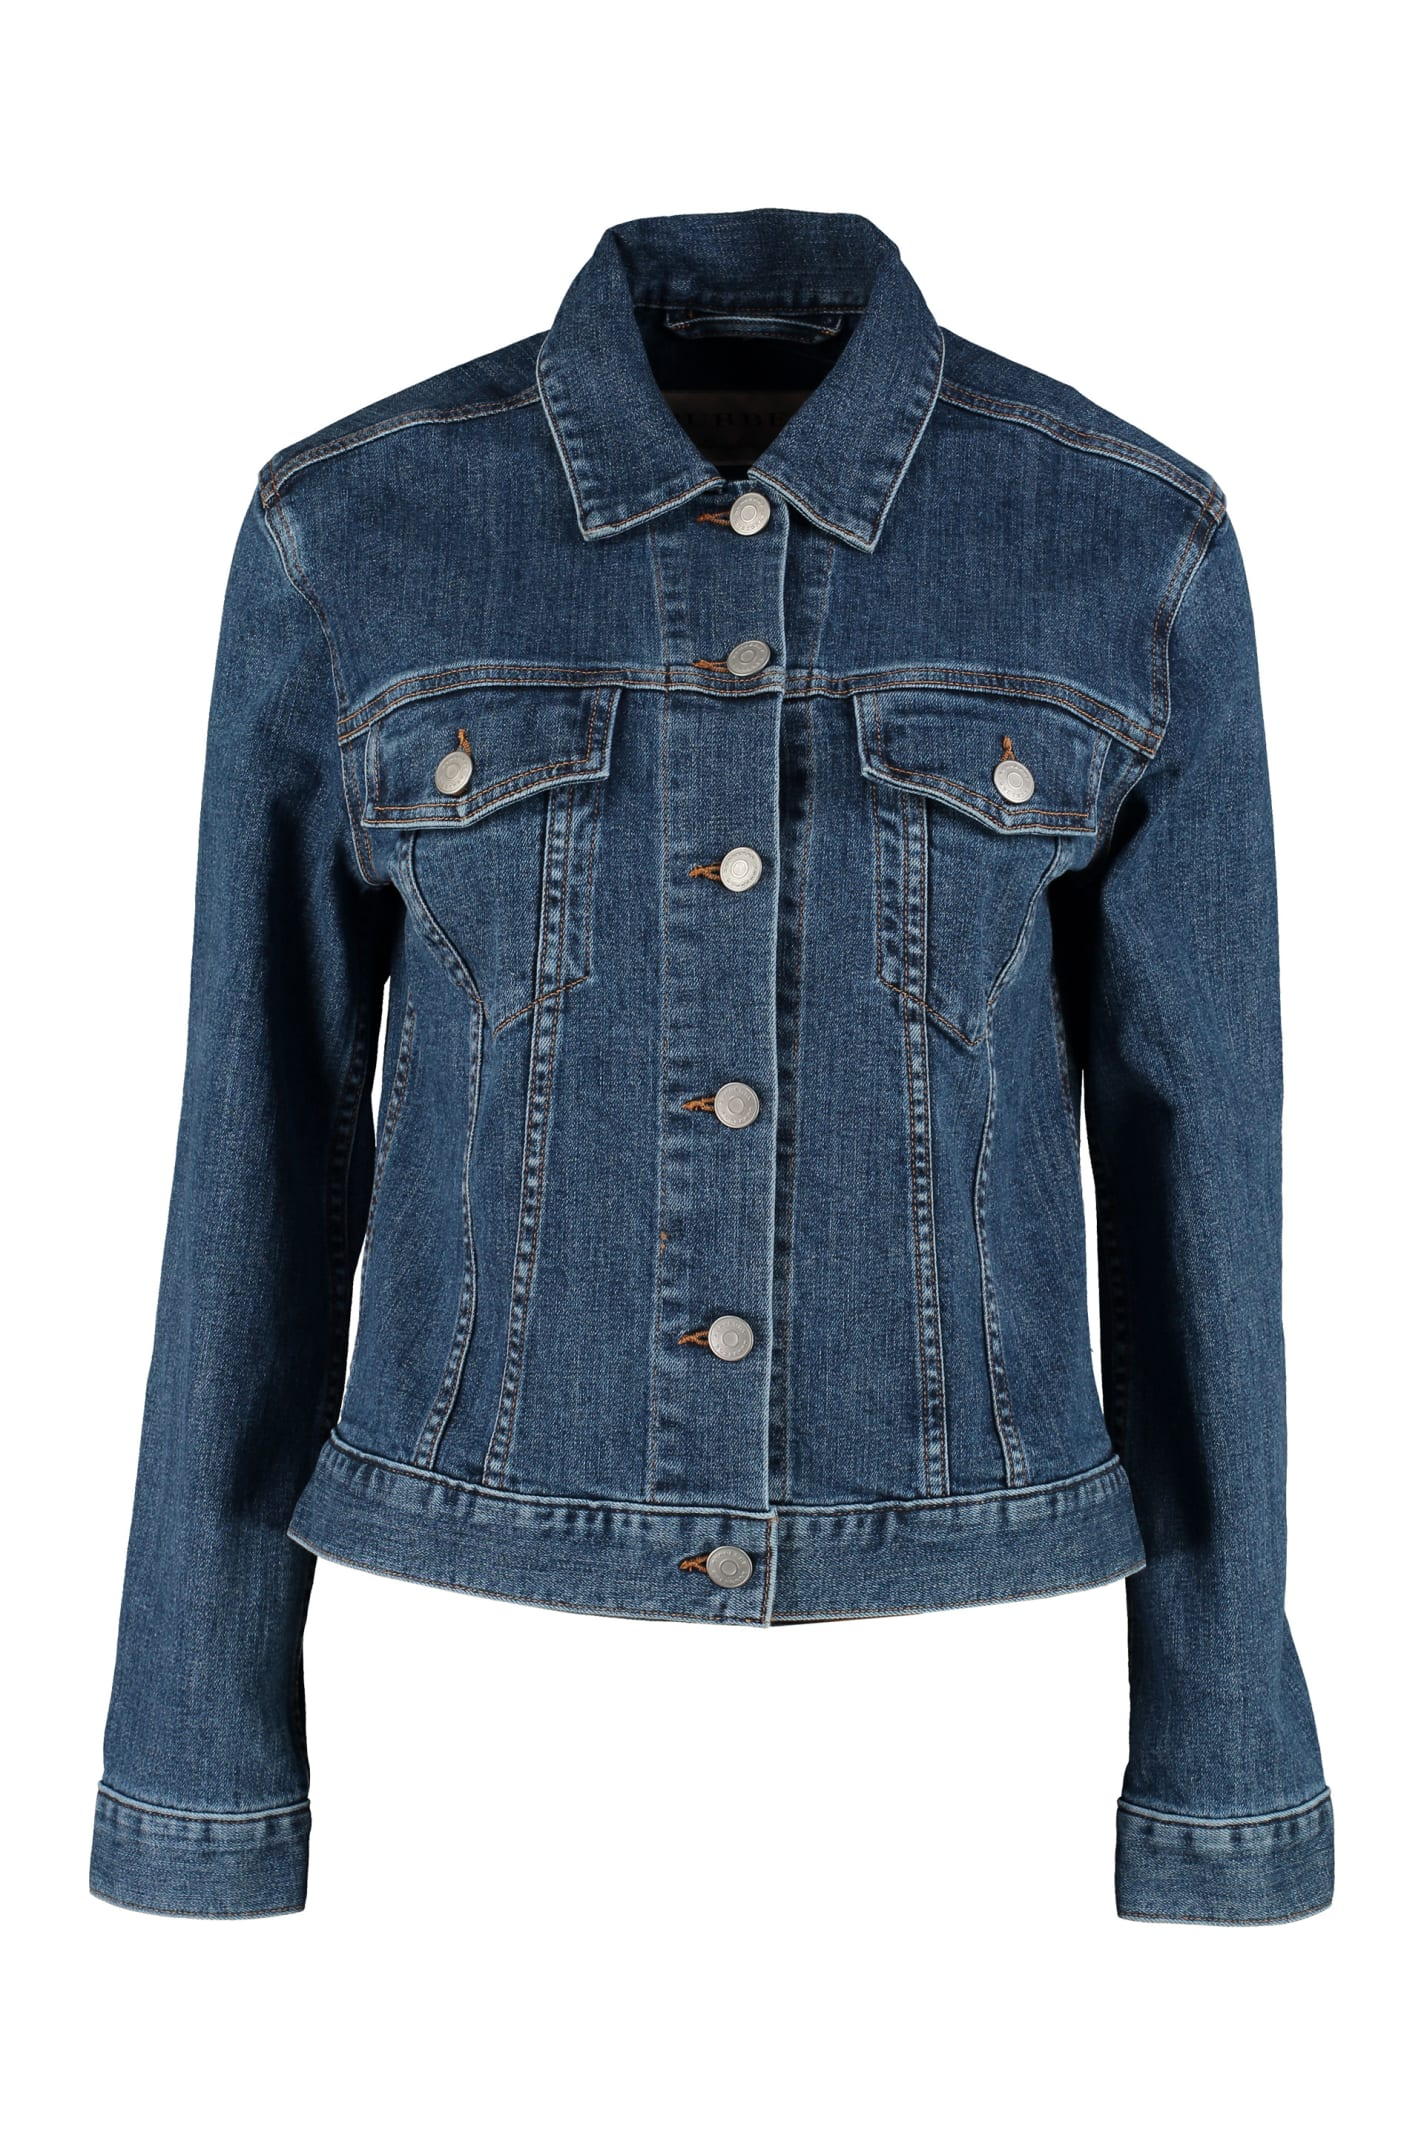 Burberry Embroidered Denim Jacket